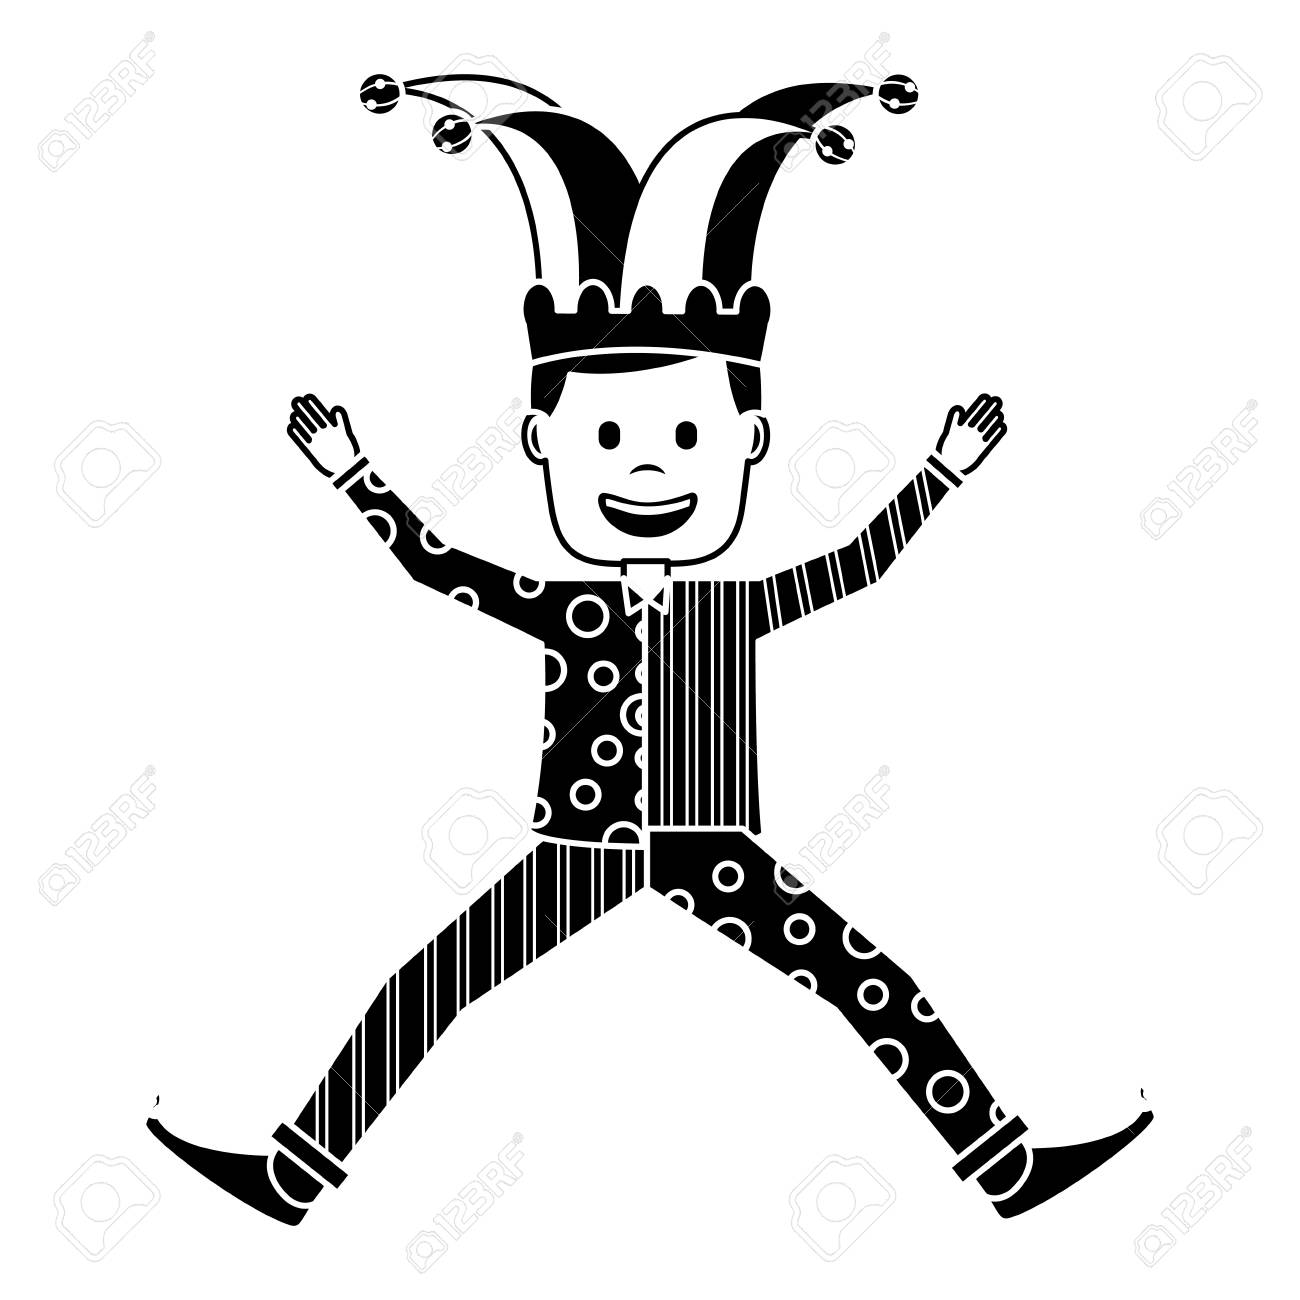 Joker jumping surprise fools day character happy vector illustration black and white image stock vector